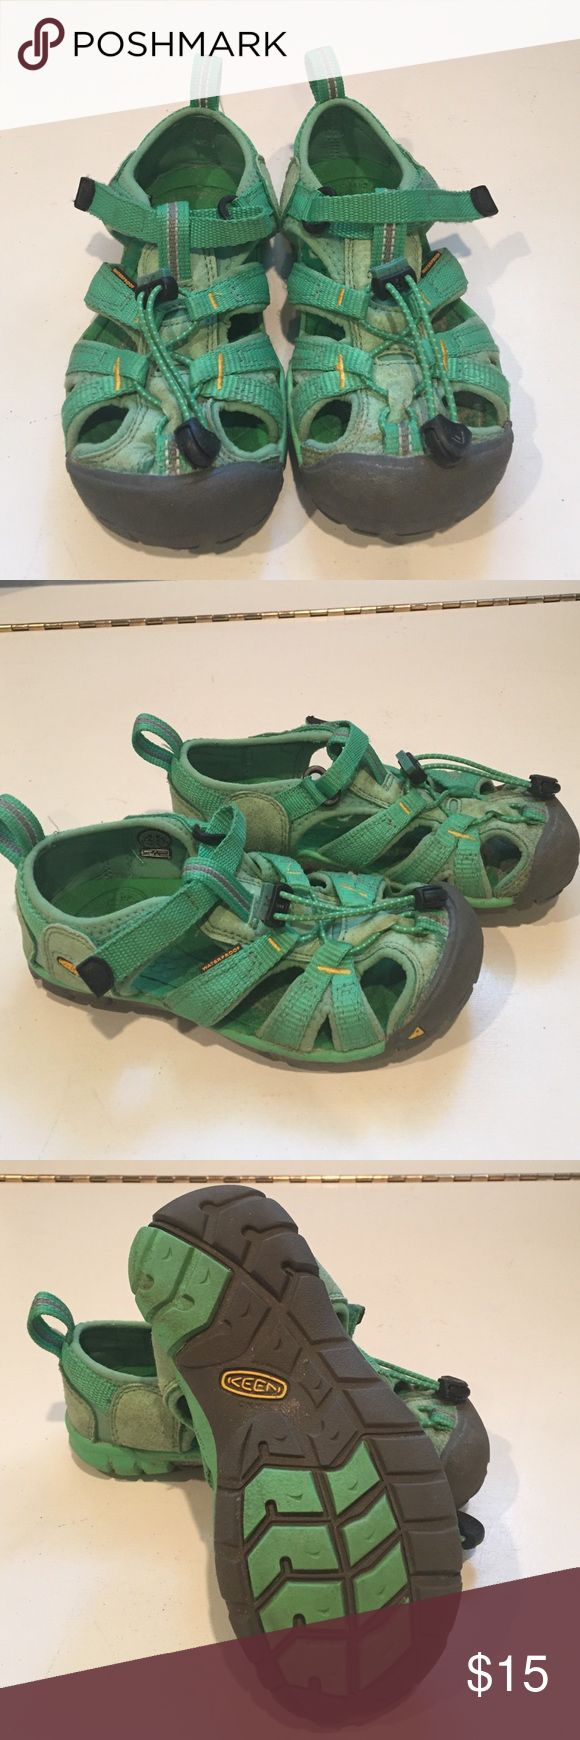 Keen kids water outdoor shoes sz 11 Great condition Keen kids green water outdoor shoes Keen Shoes